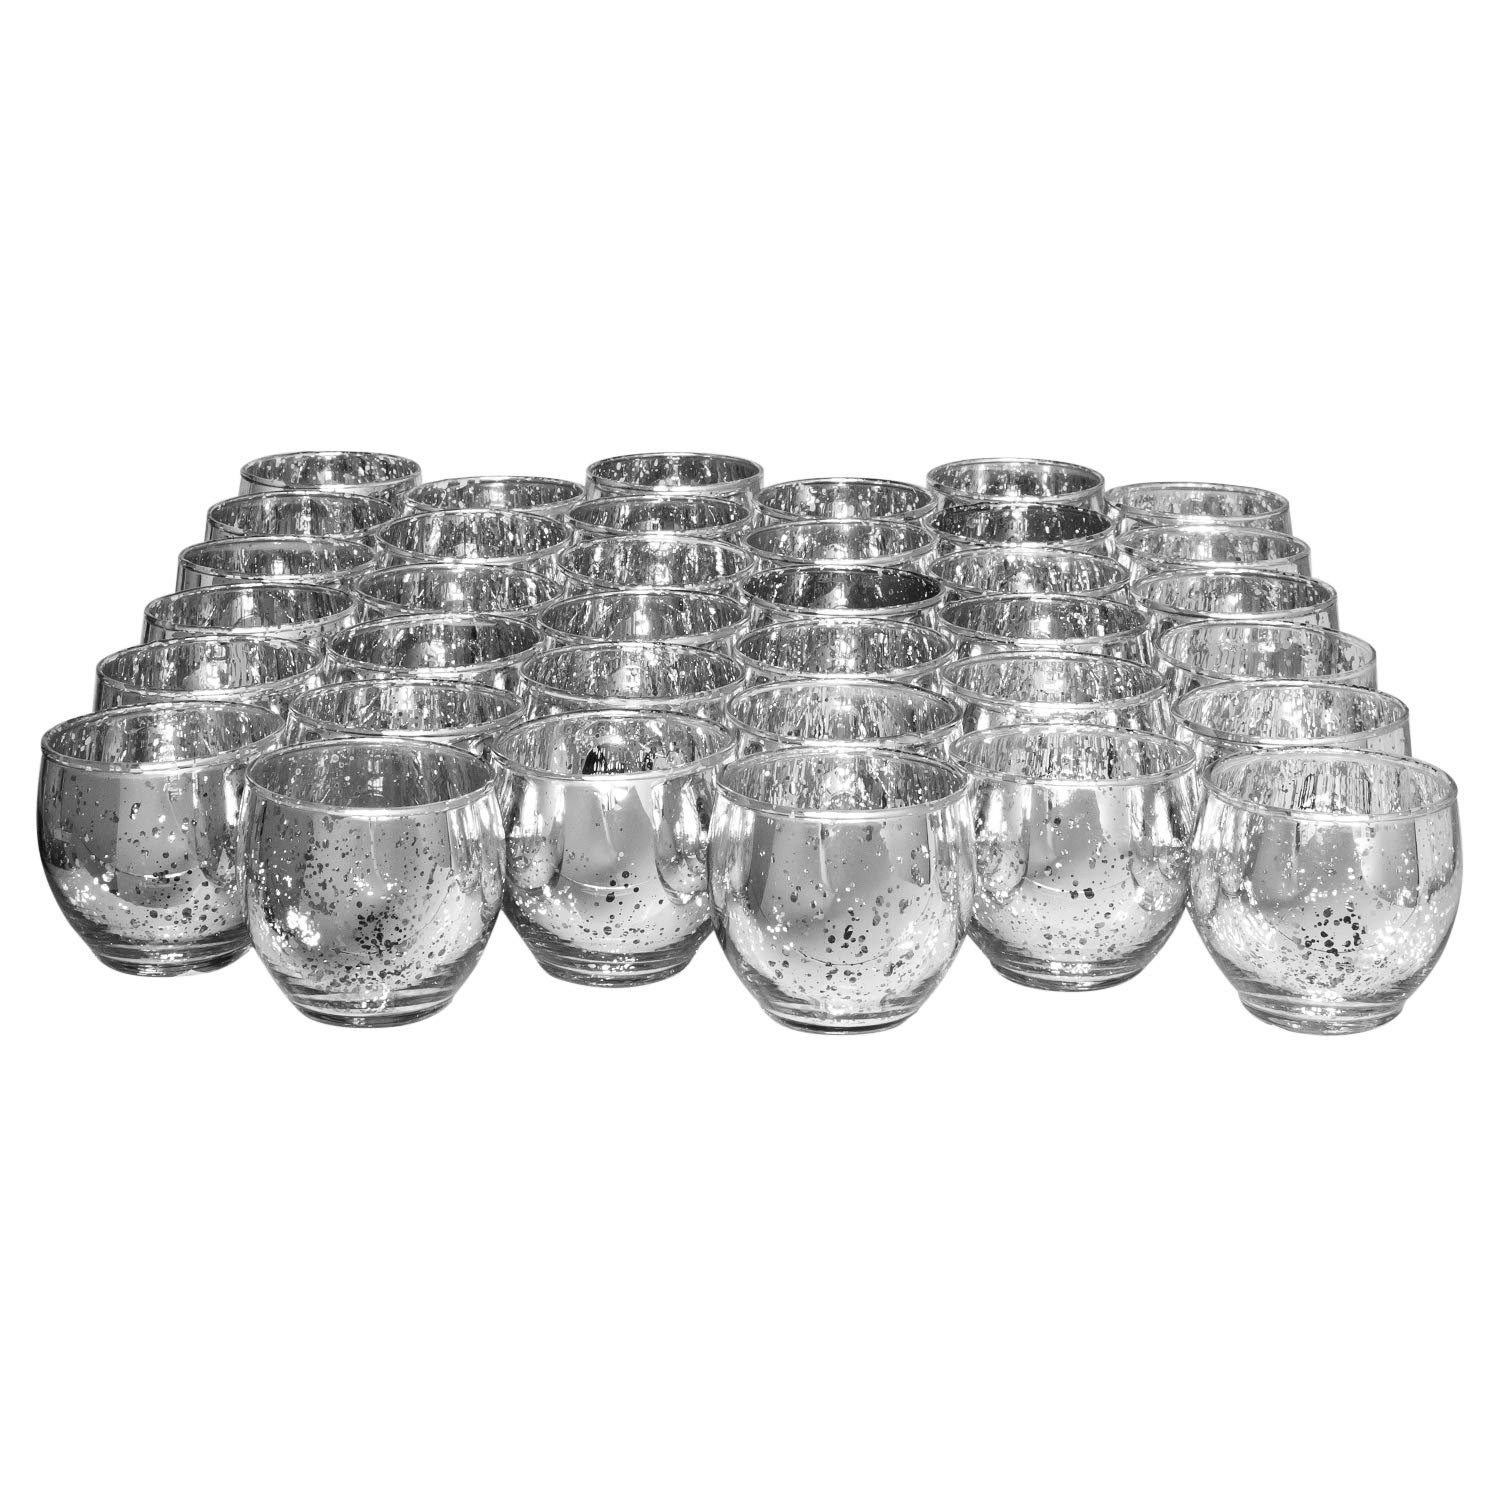 Candle Holder Glass Votive for Wedding, Birthday, Holiday & Home Decoration by Royal Imports, Speckled Mercury Metallic Silver, Roly Poly Set of 36 - unfilled